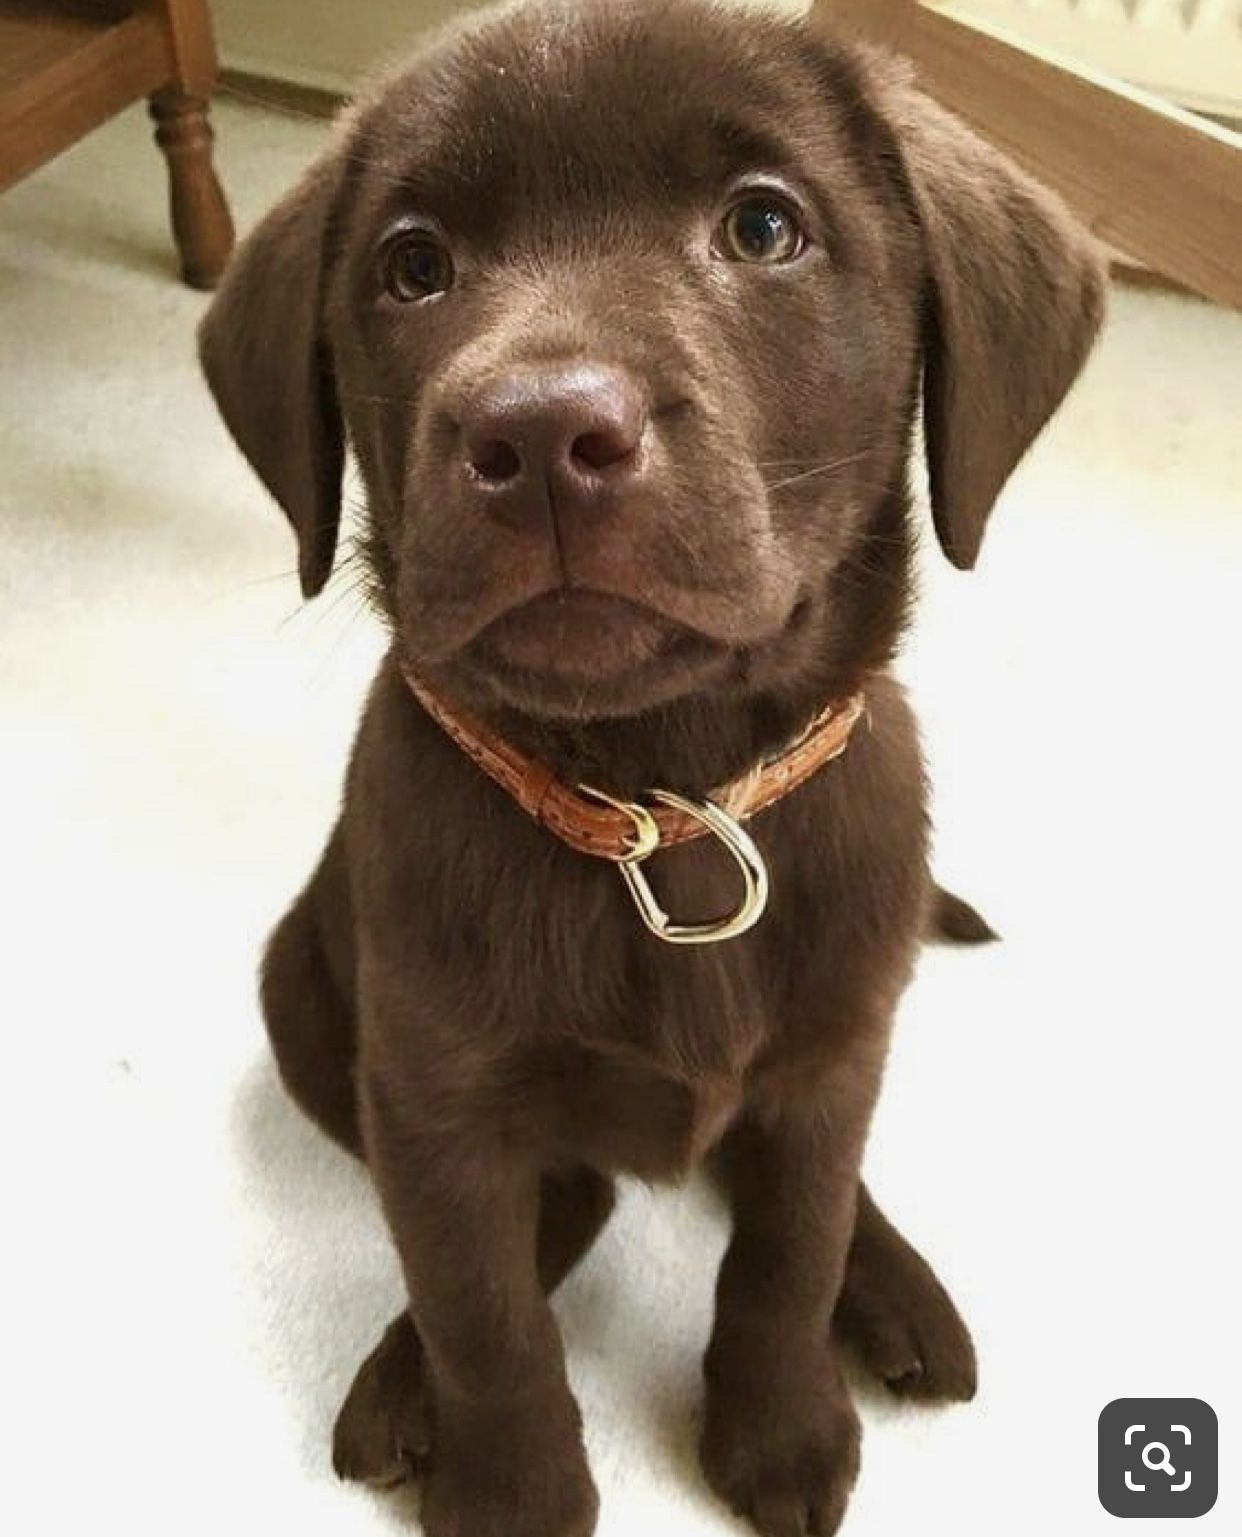 Pin By Shirley Sandidge On Puppy Research Labrador Puppy Cute Dogs And Puppies Cute Baby Animals